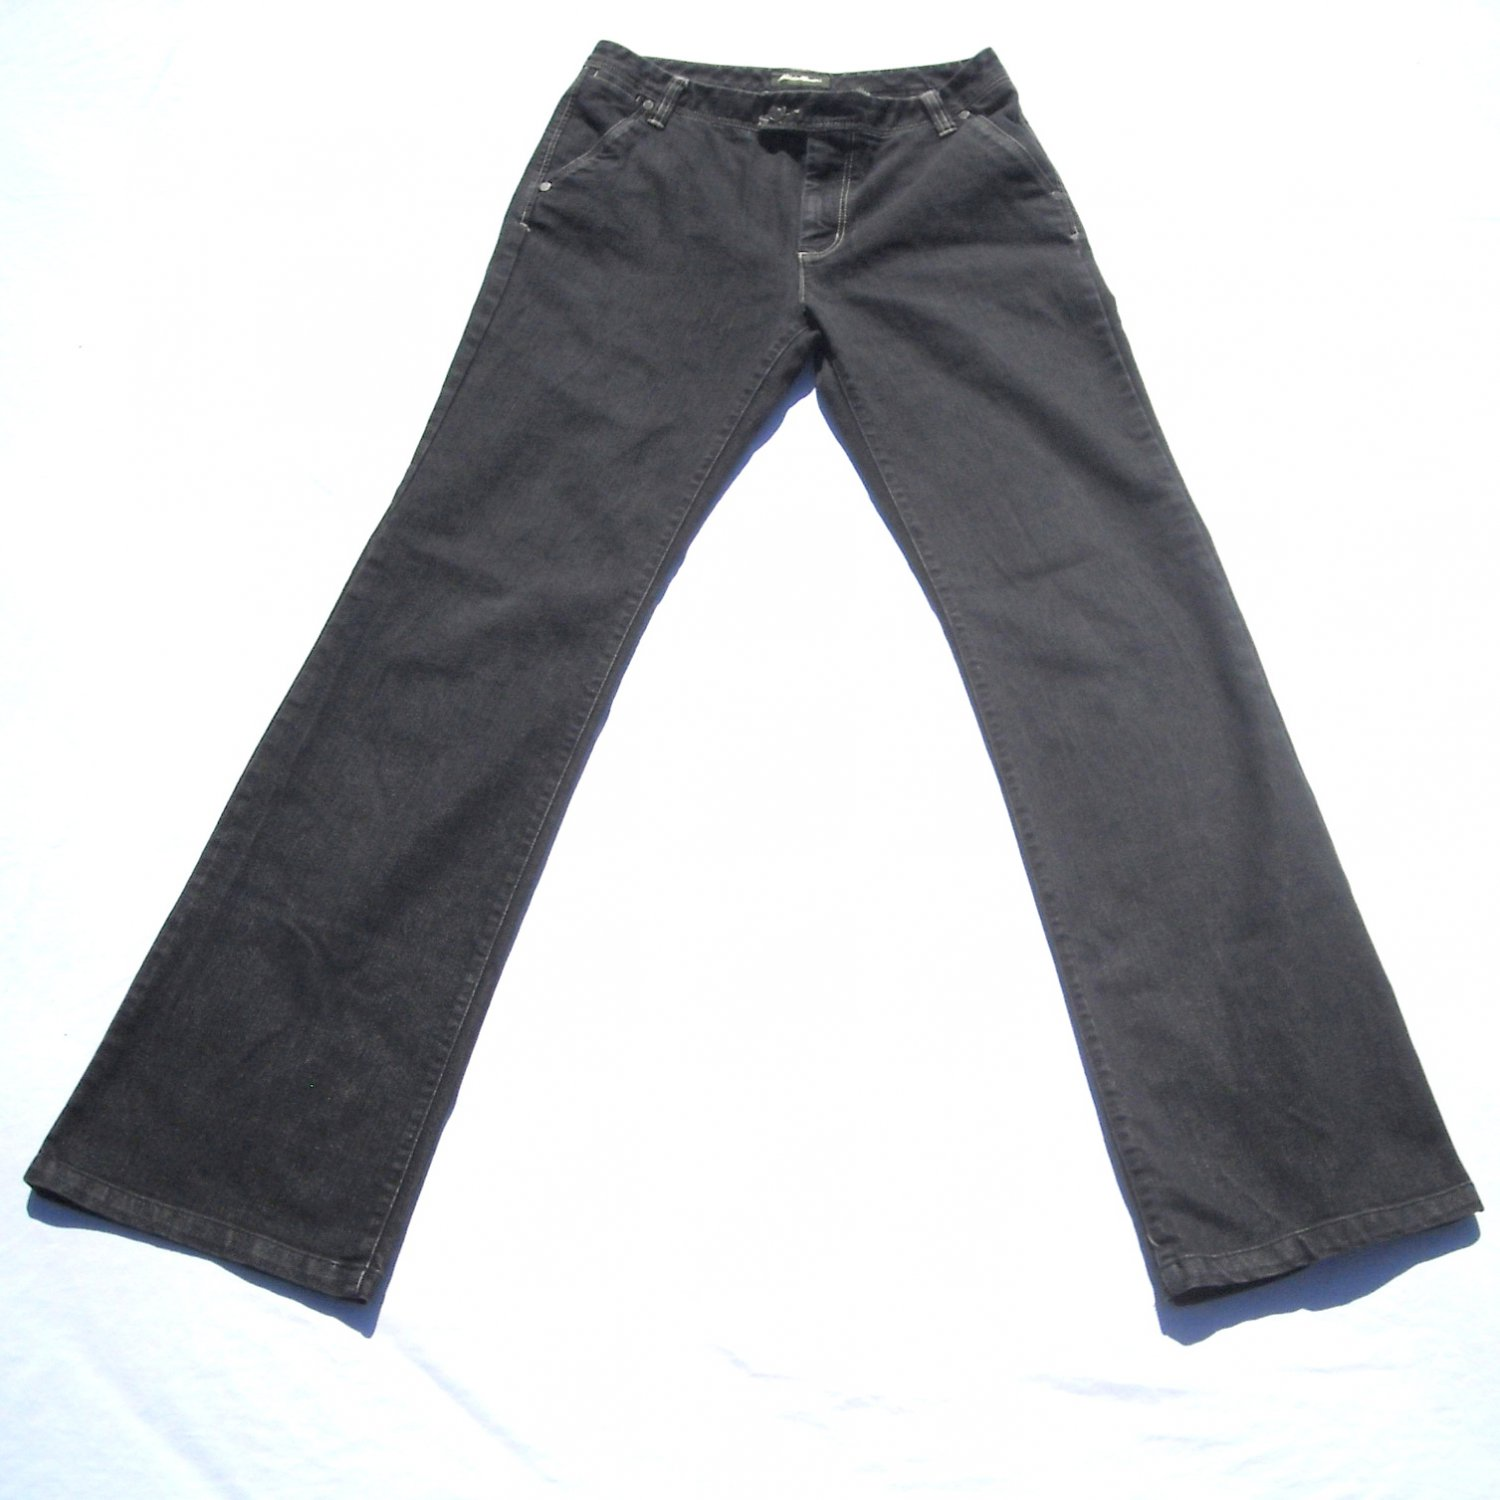 Eddie Bauer Misses Specially Dyed Black Jeans Size Tall 6